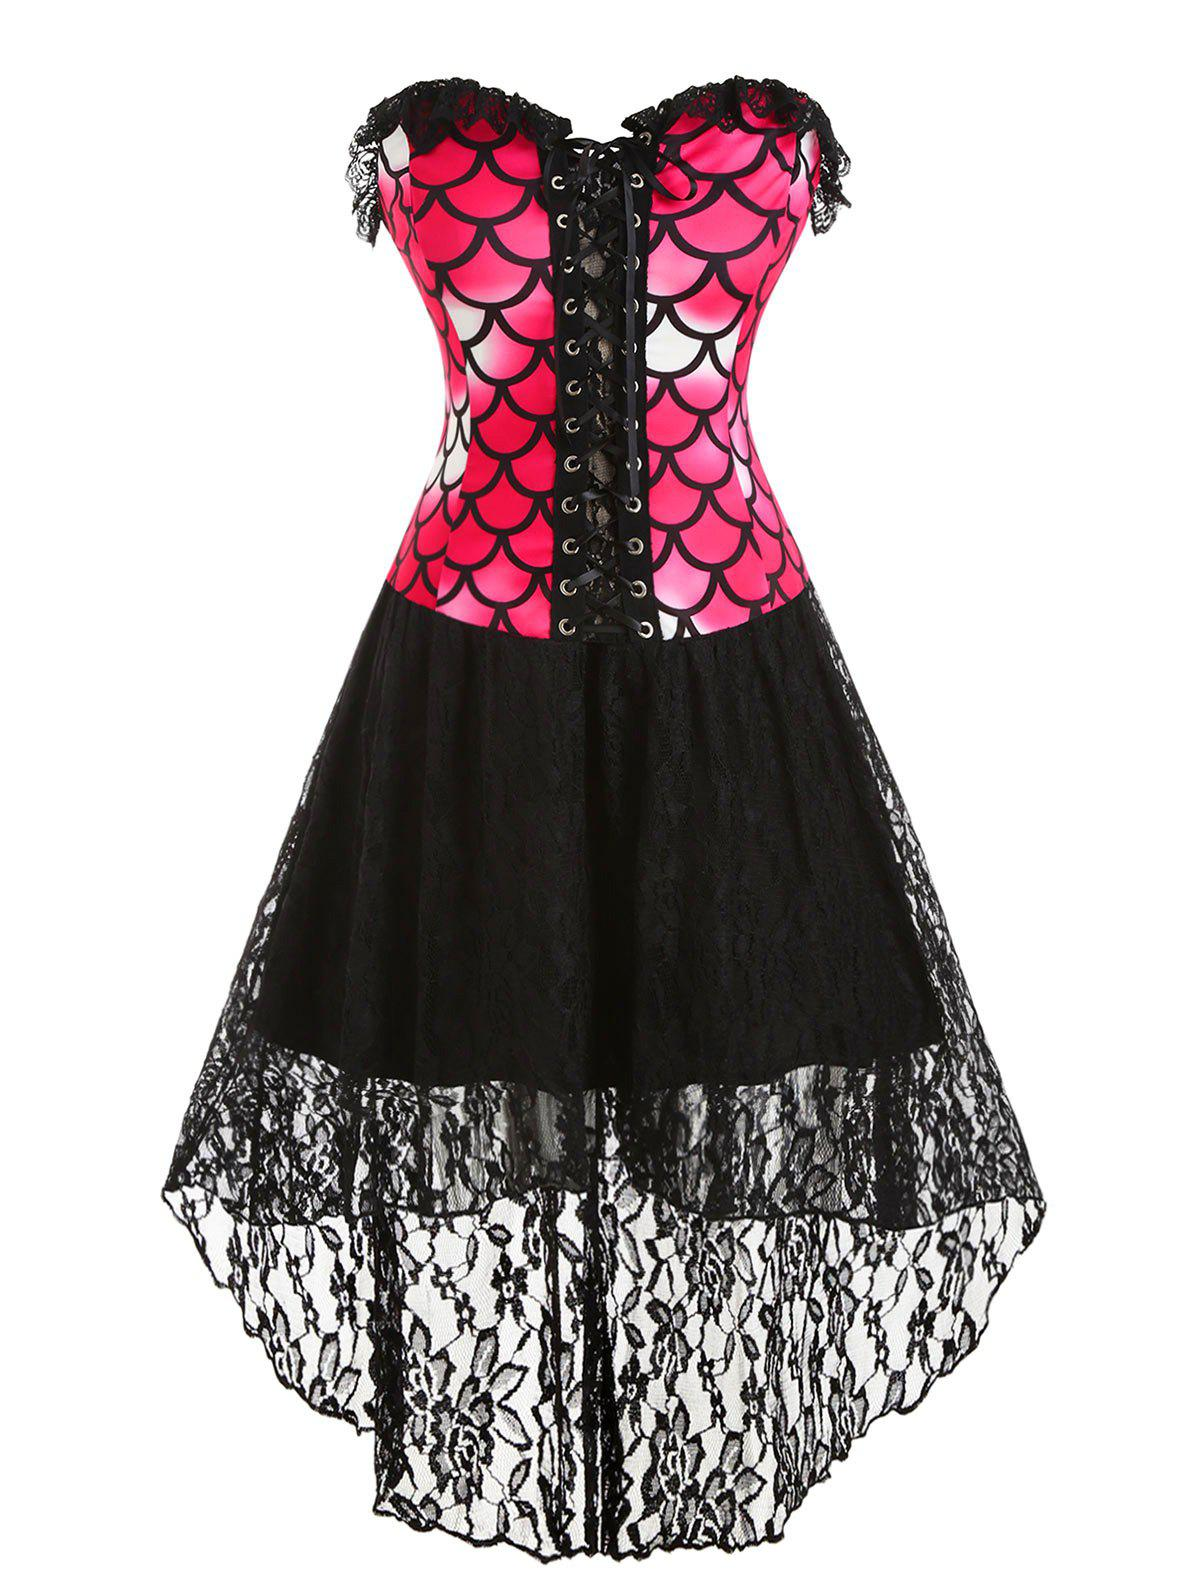 Discount Lace Up Lace Panel High Low Mermaid Scales Print Plus Size Corset Dress